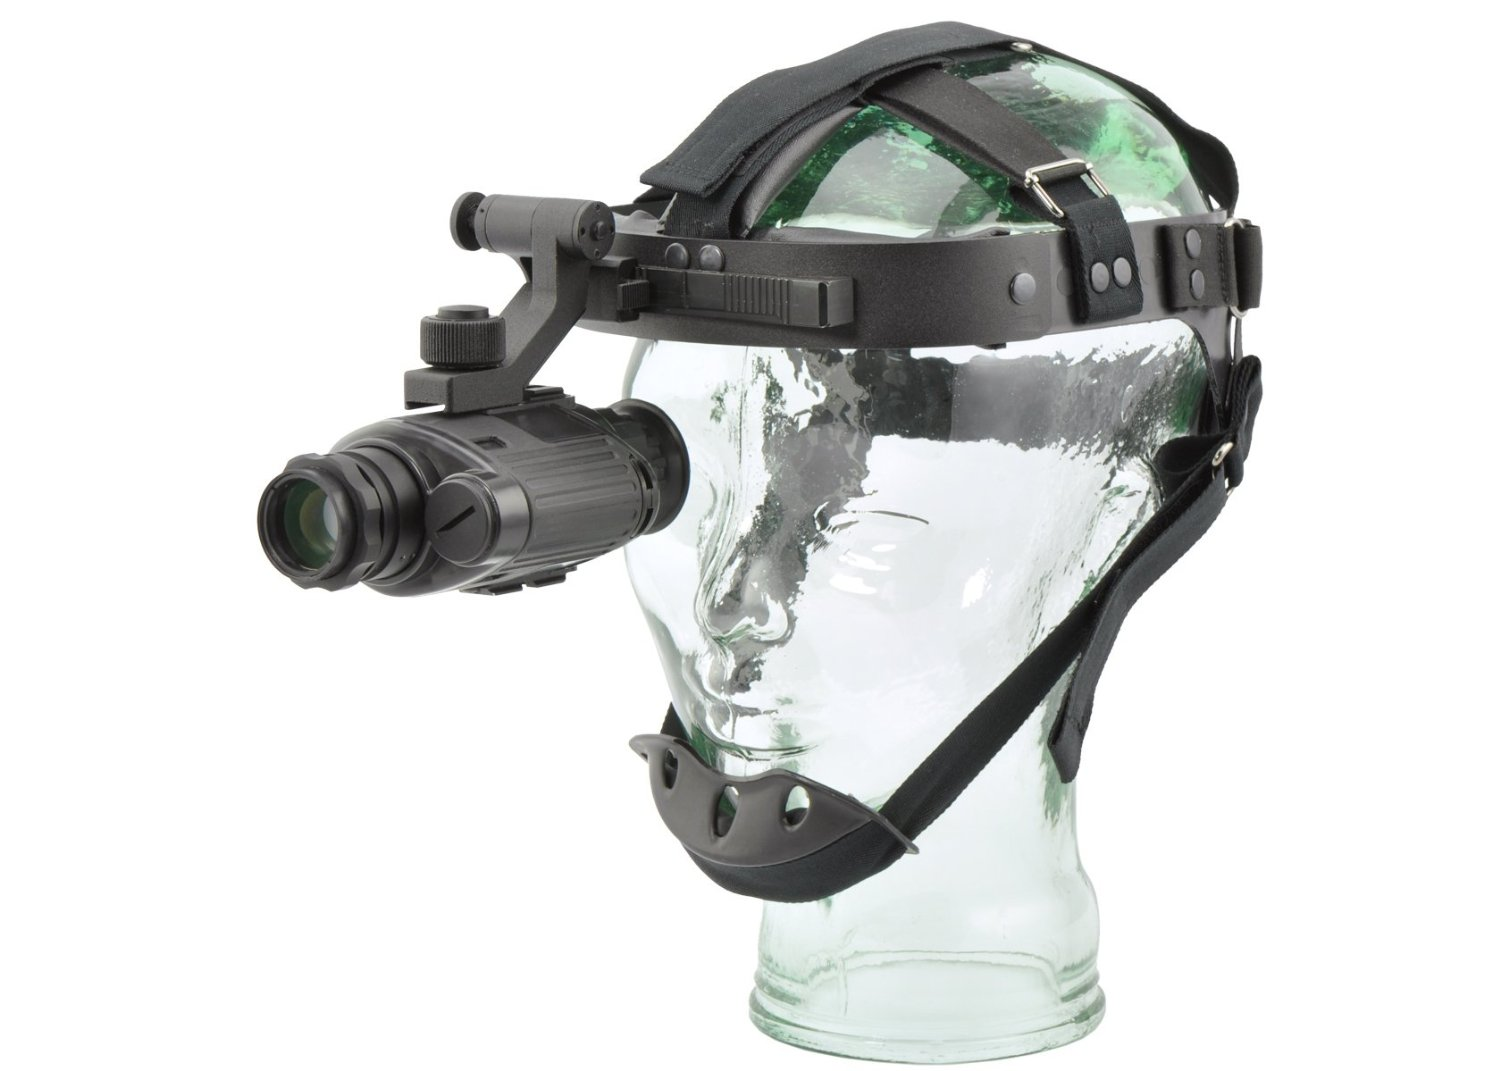 Armasight Vega Gen 1+ night vision goggles review